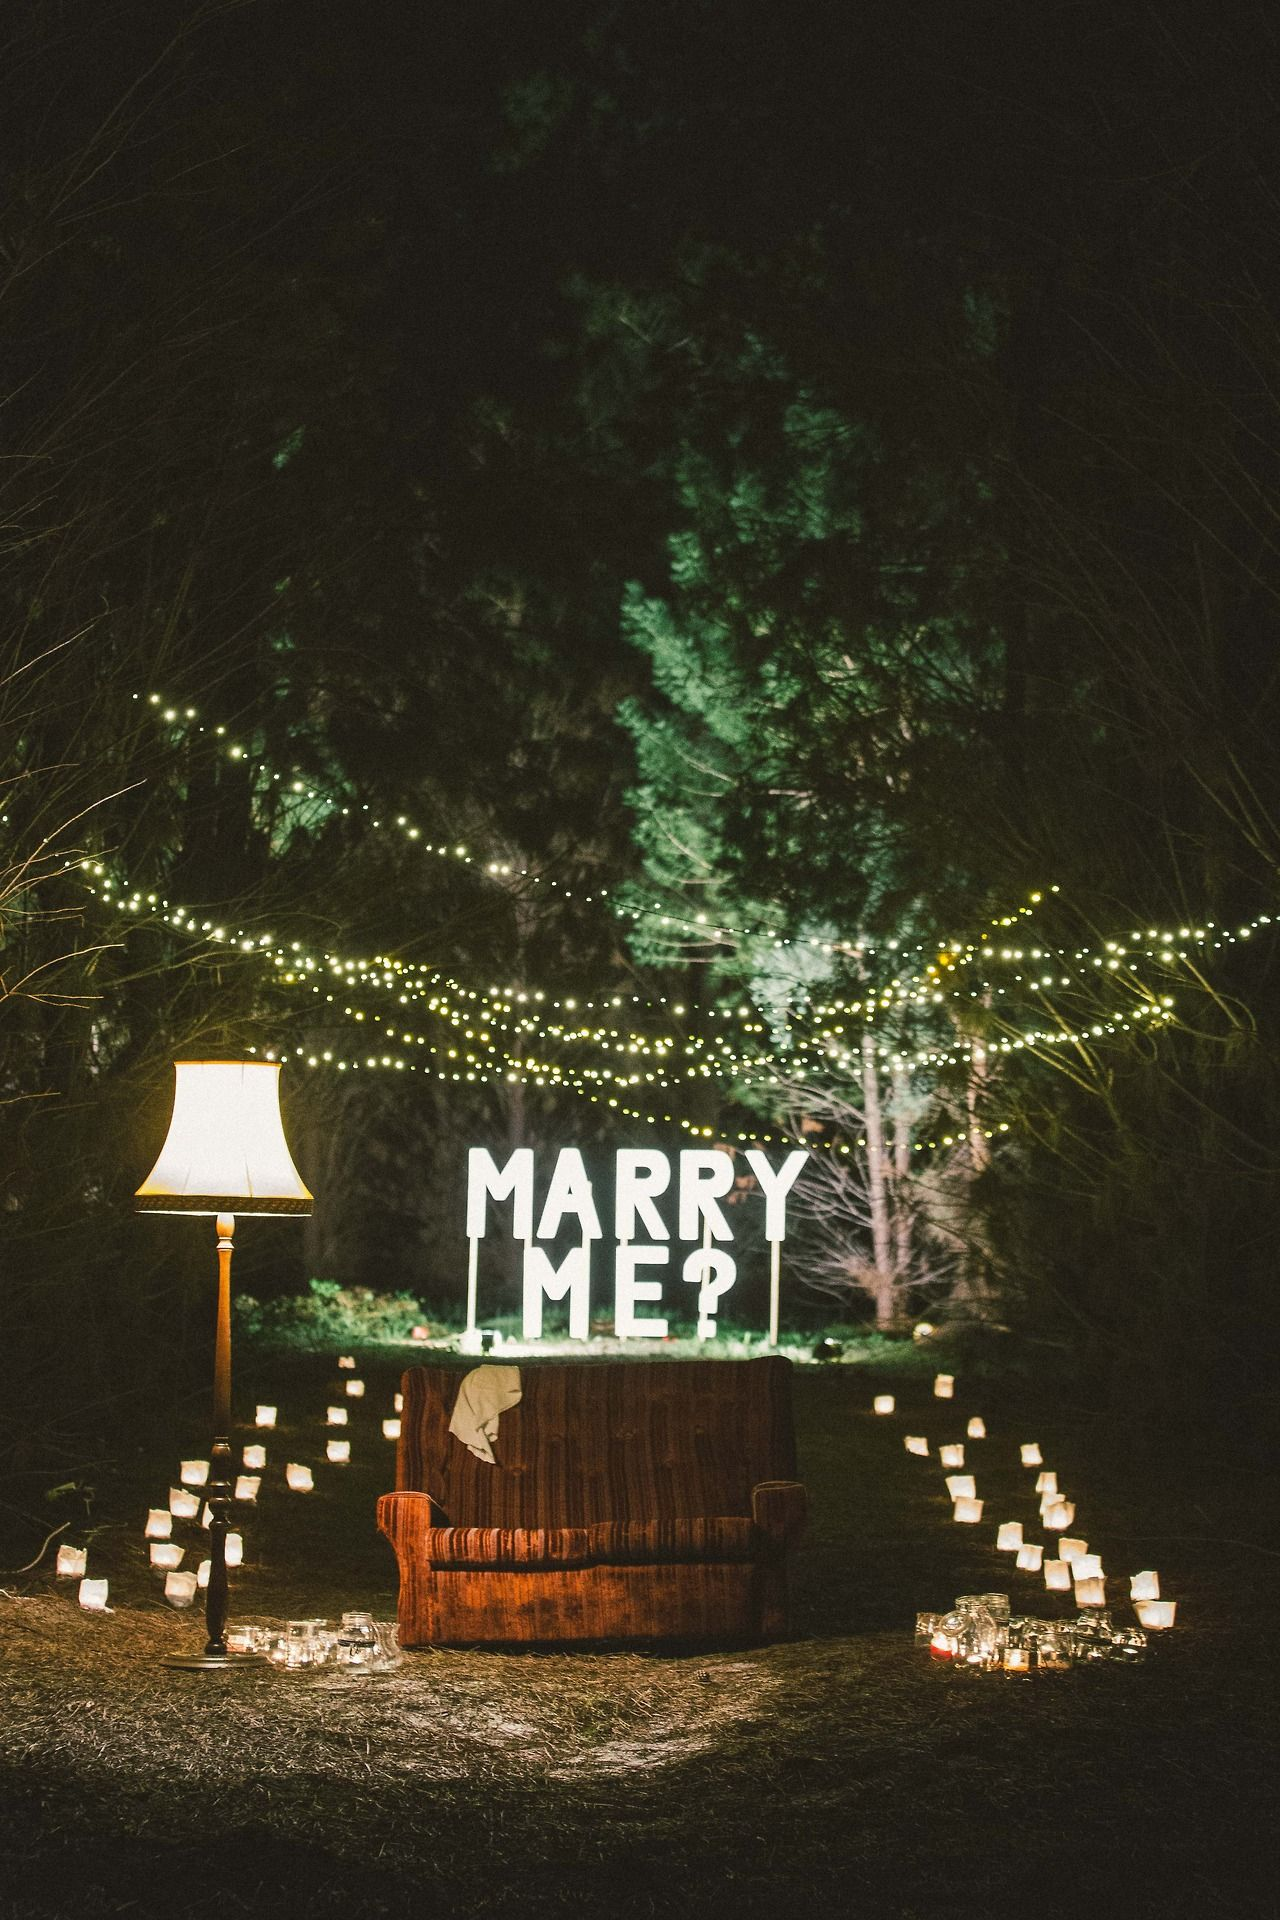 20 wedding signs we love | engagement ideas | pinterest | wedding